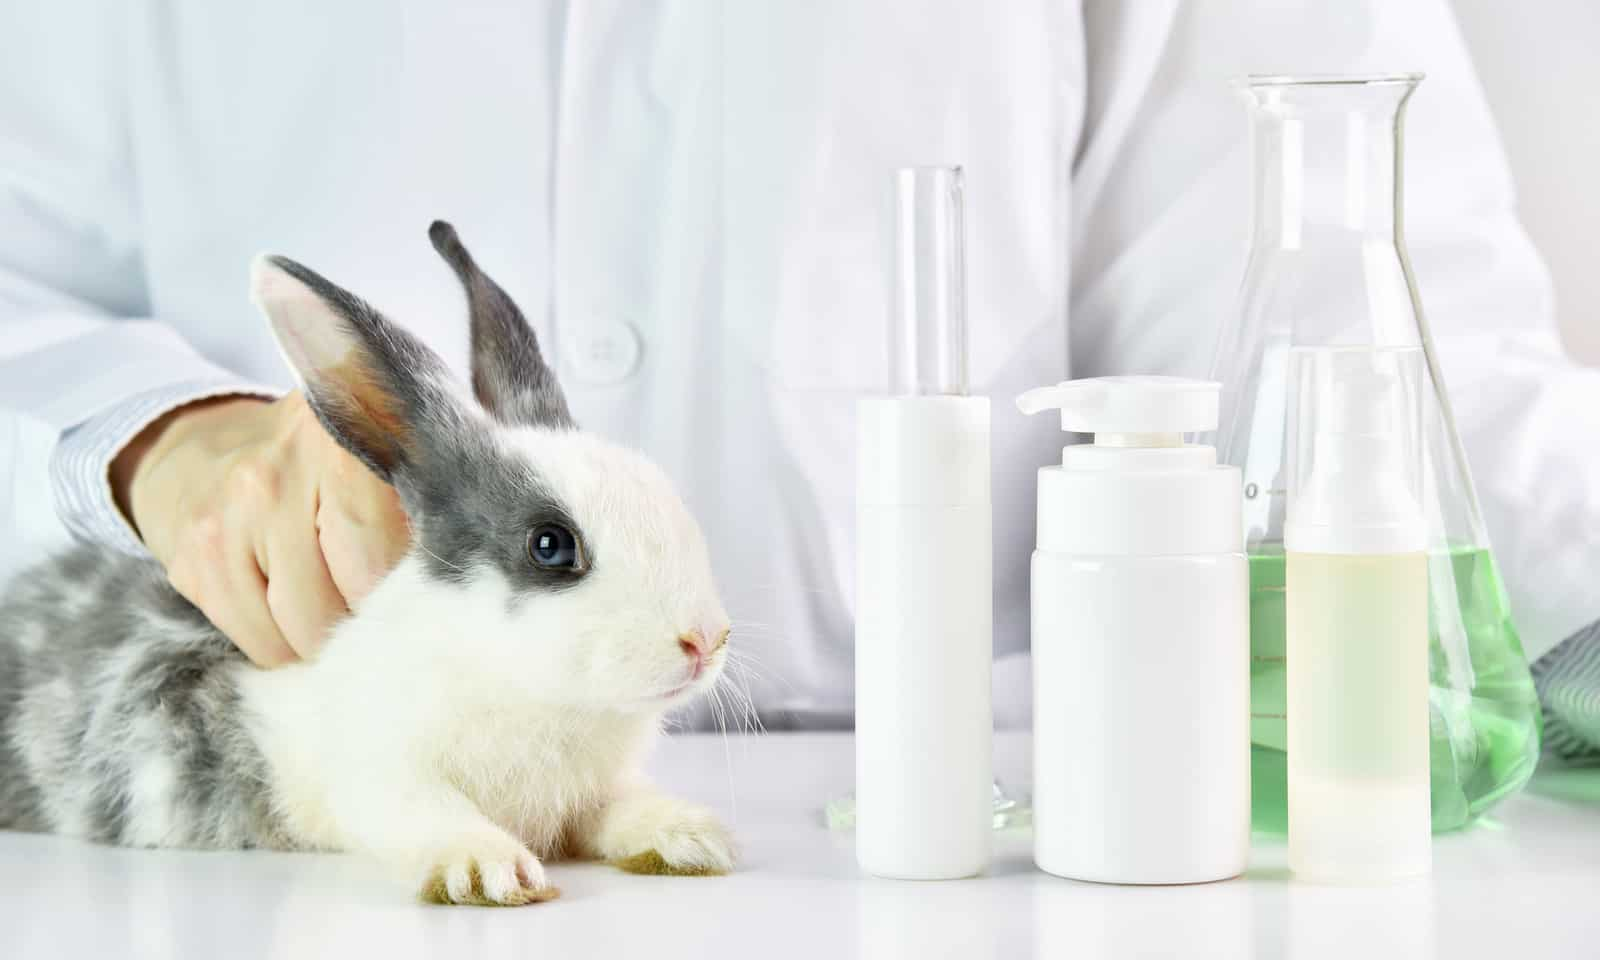 Cruelty-Free-Beauty-Brands-Are-Finding-Ways-to-Get-around-China's-Animal-Testing-Policies